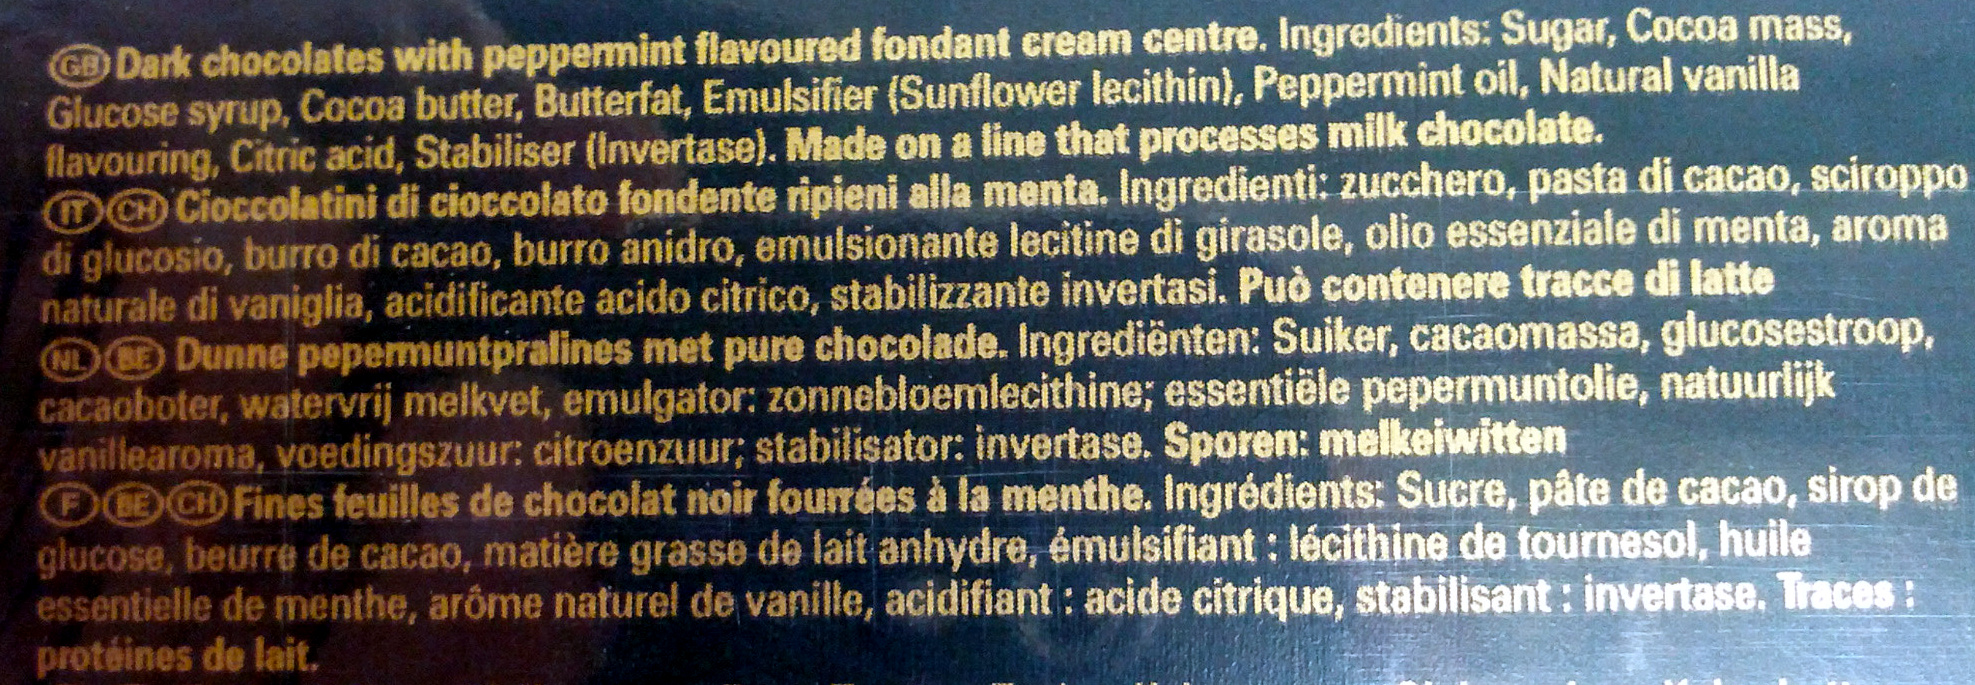 After Eight - Ingredients